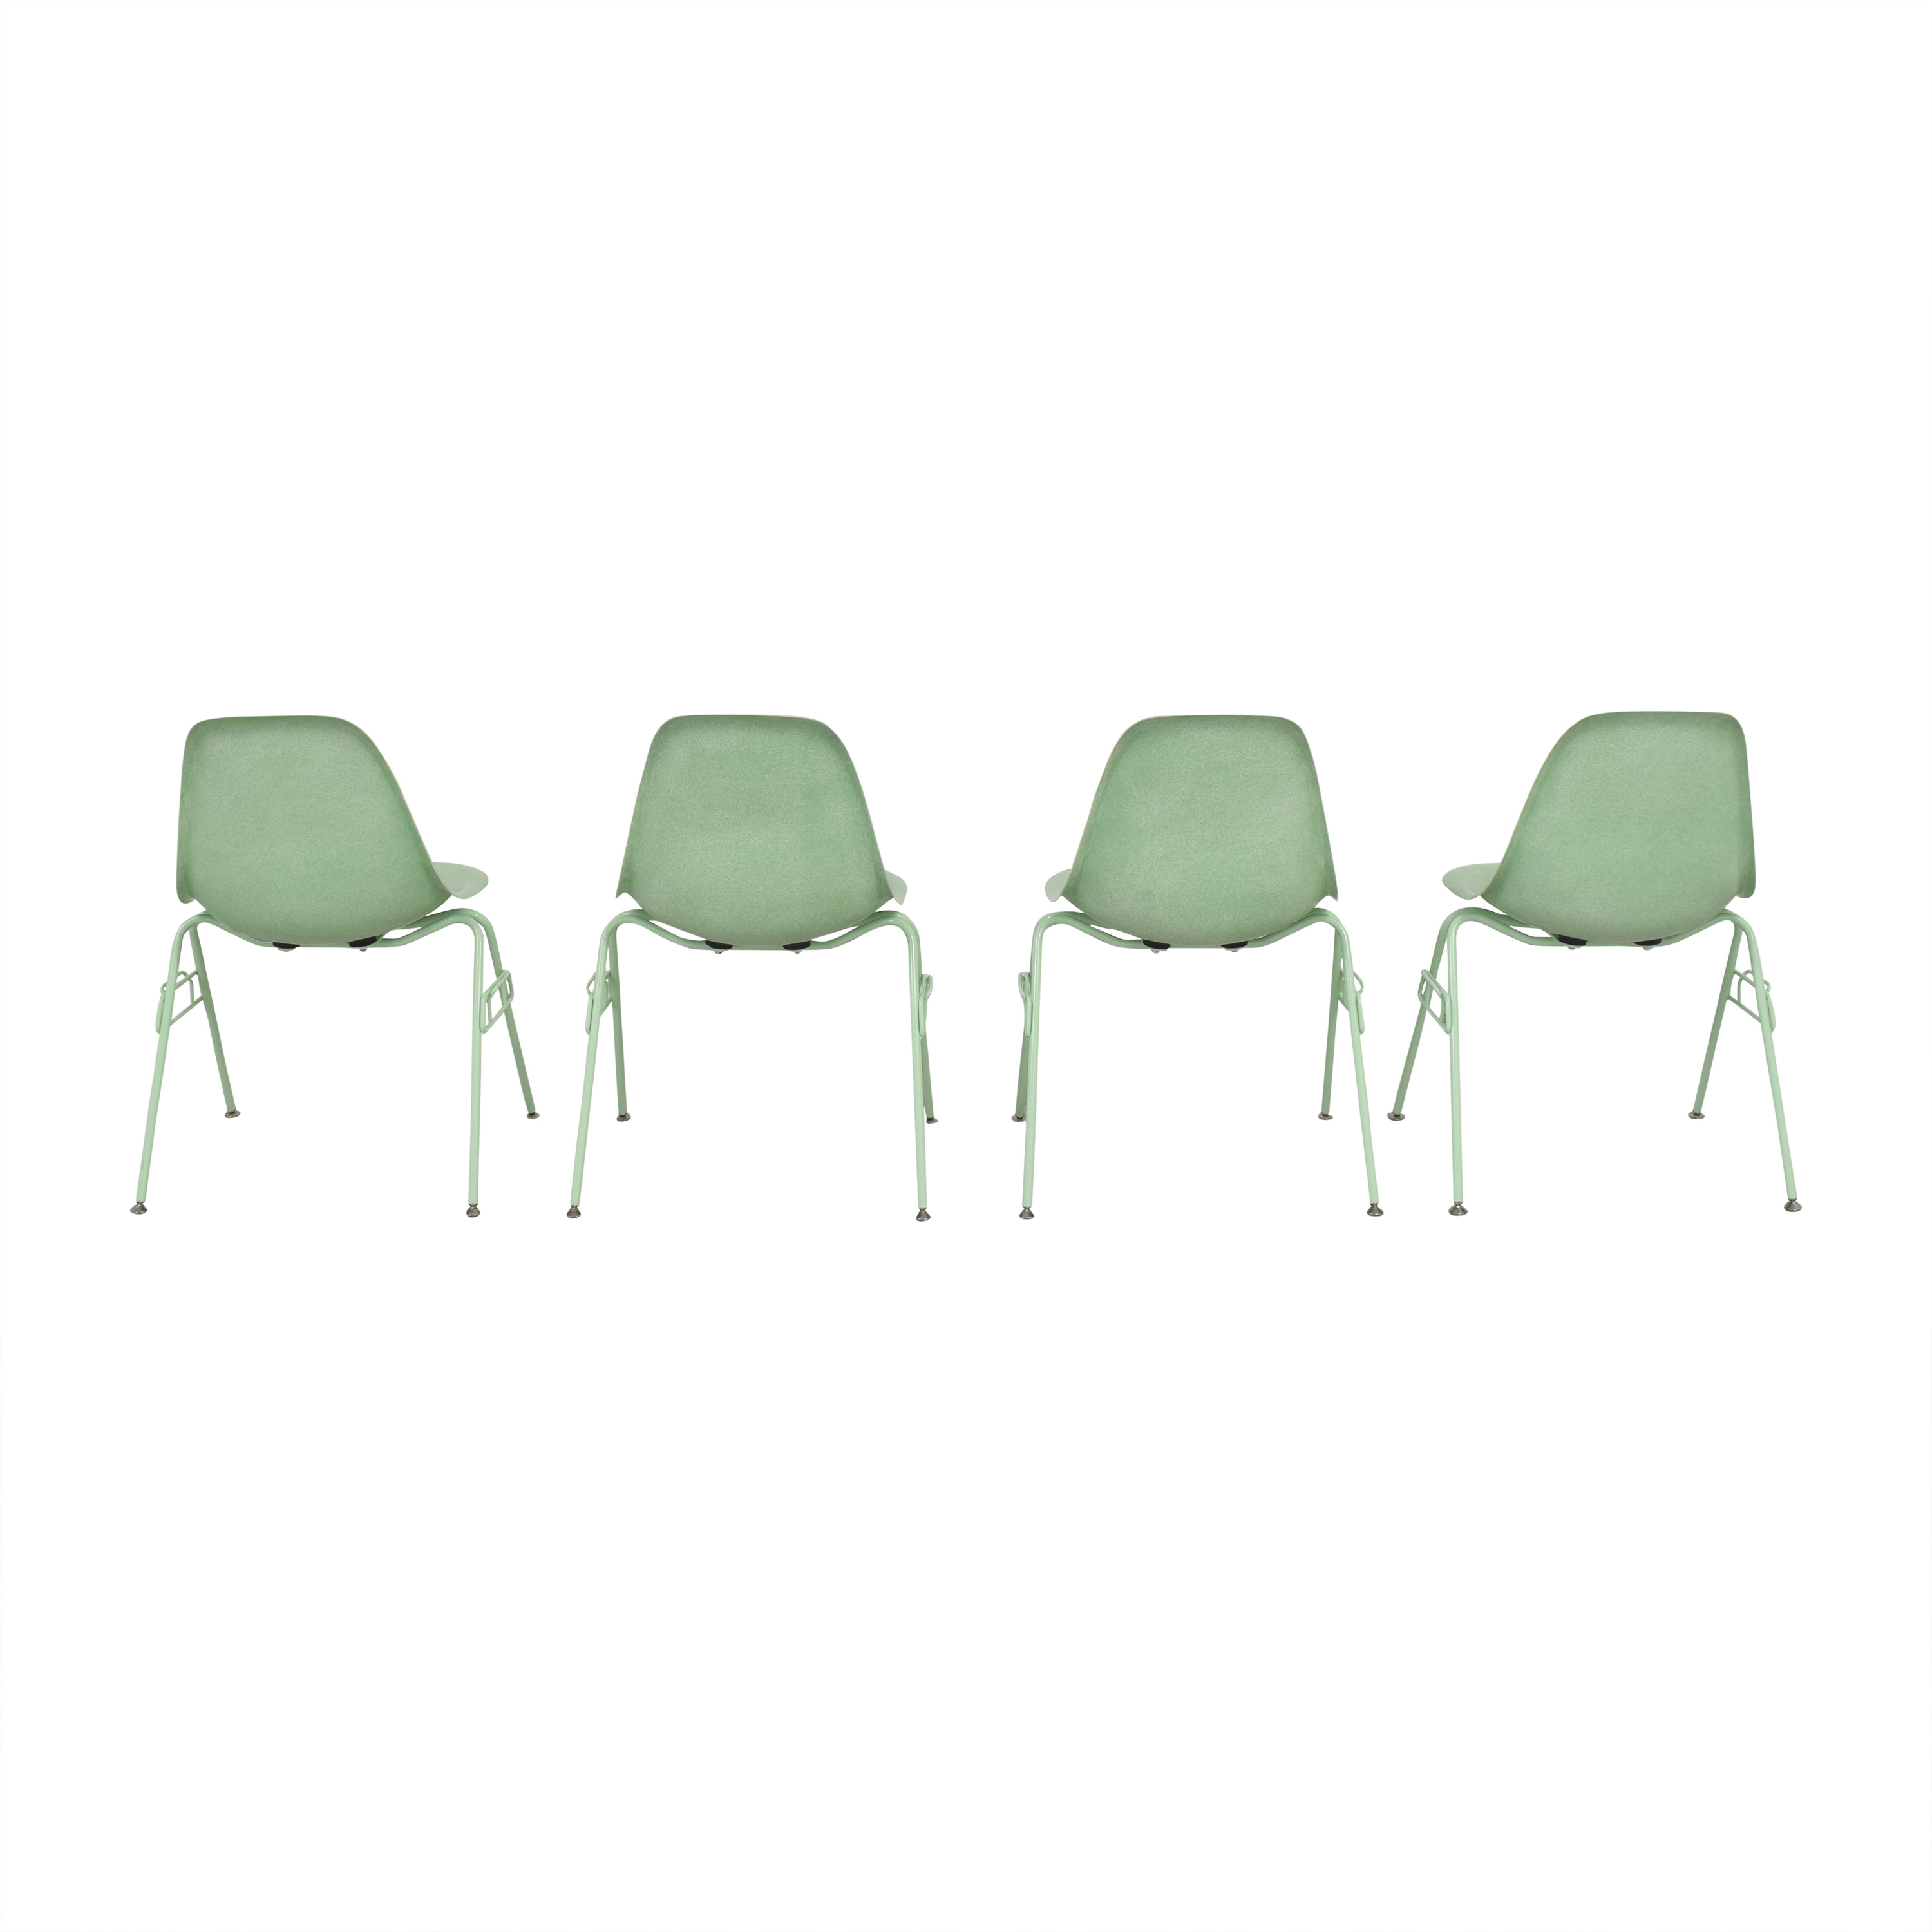 Modernica Modernica Case Study Shell Stacking Side Dining Chairs on sale